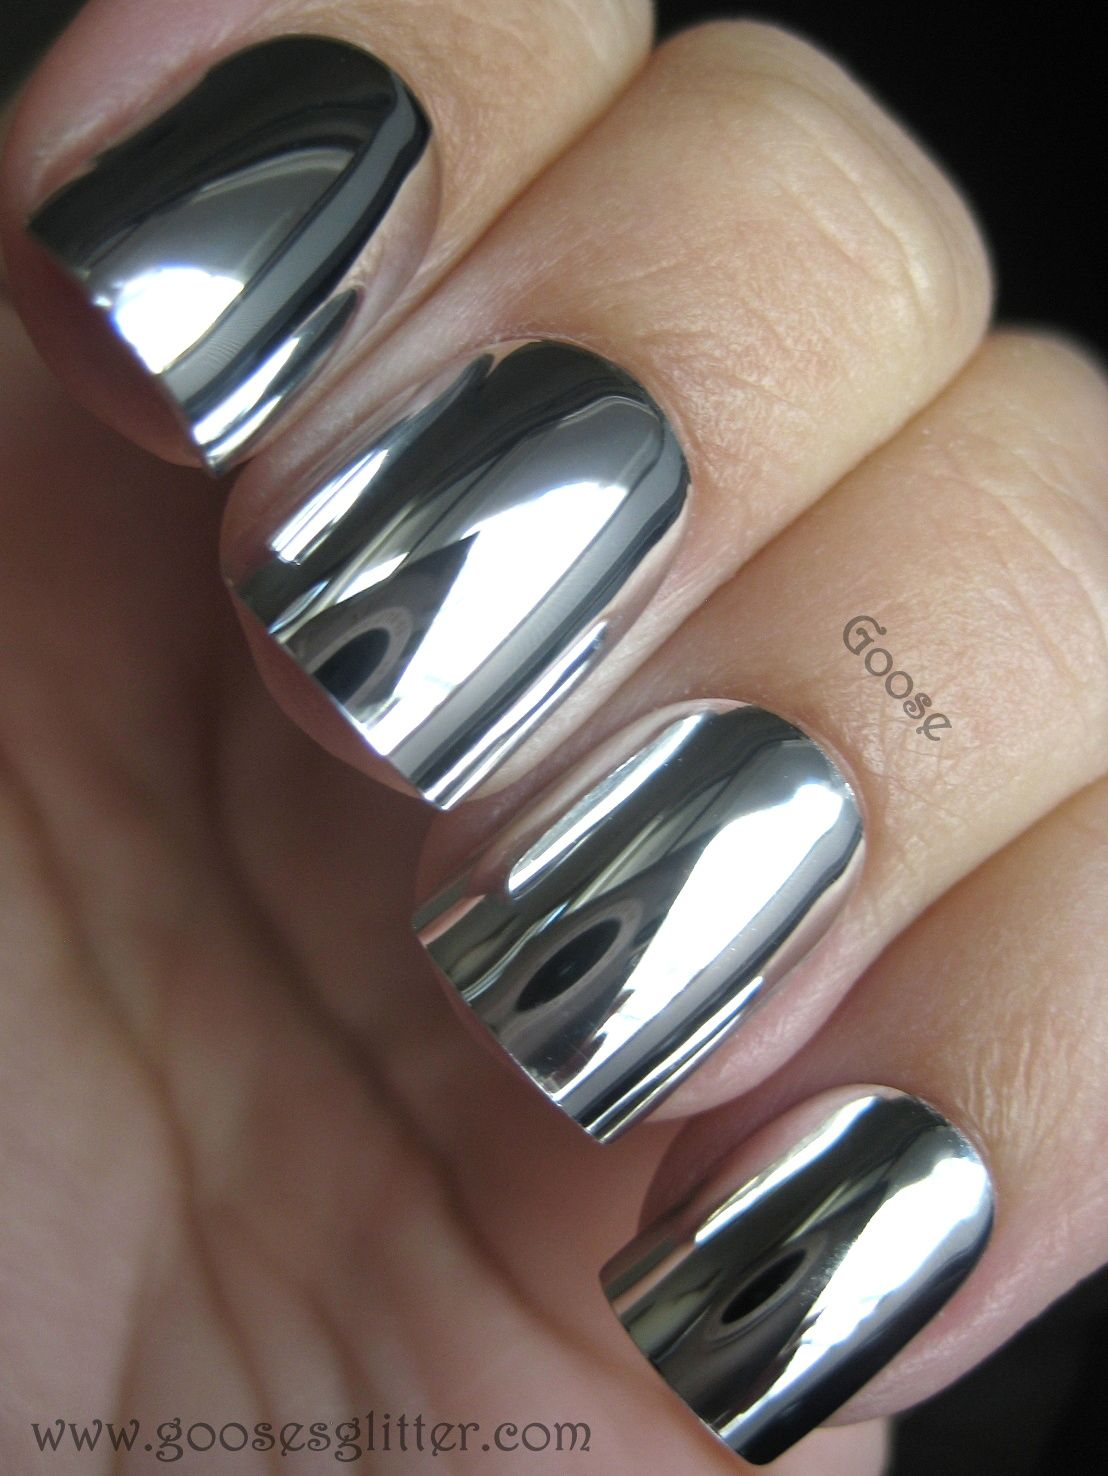 Goose\'s Glitter: Mirror Nails. HOLY CRAP THESE ARE AWESOME ...